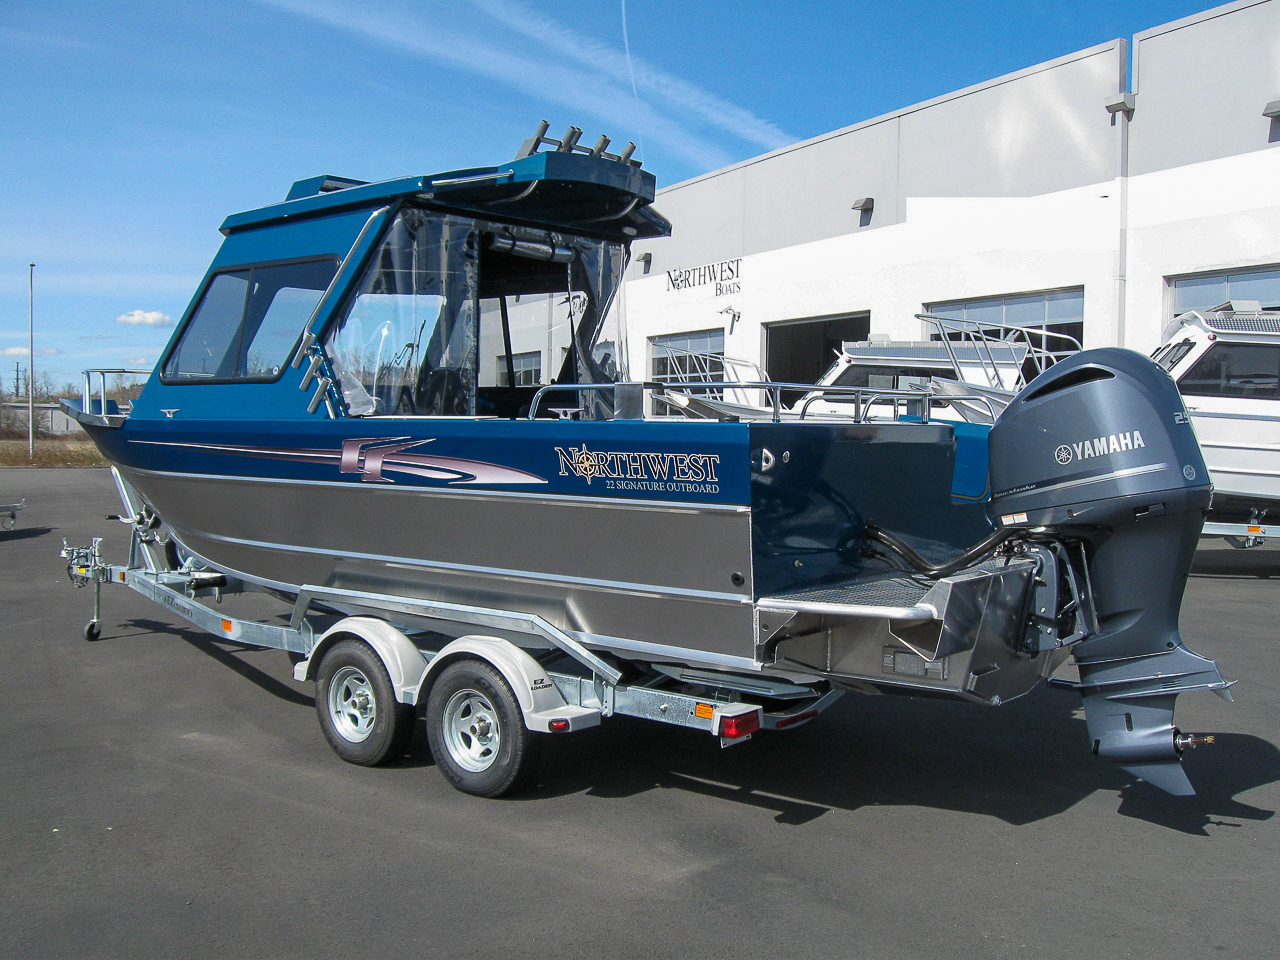 Northwest Boats 22 Signature OB